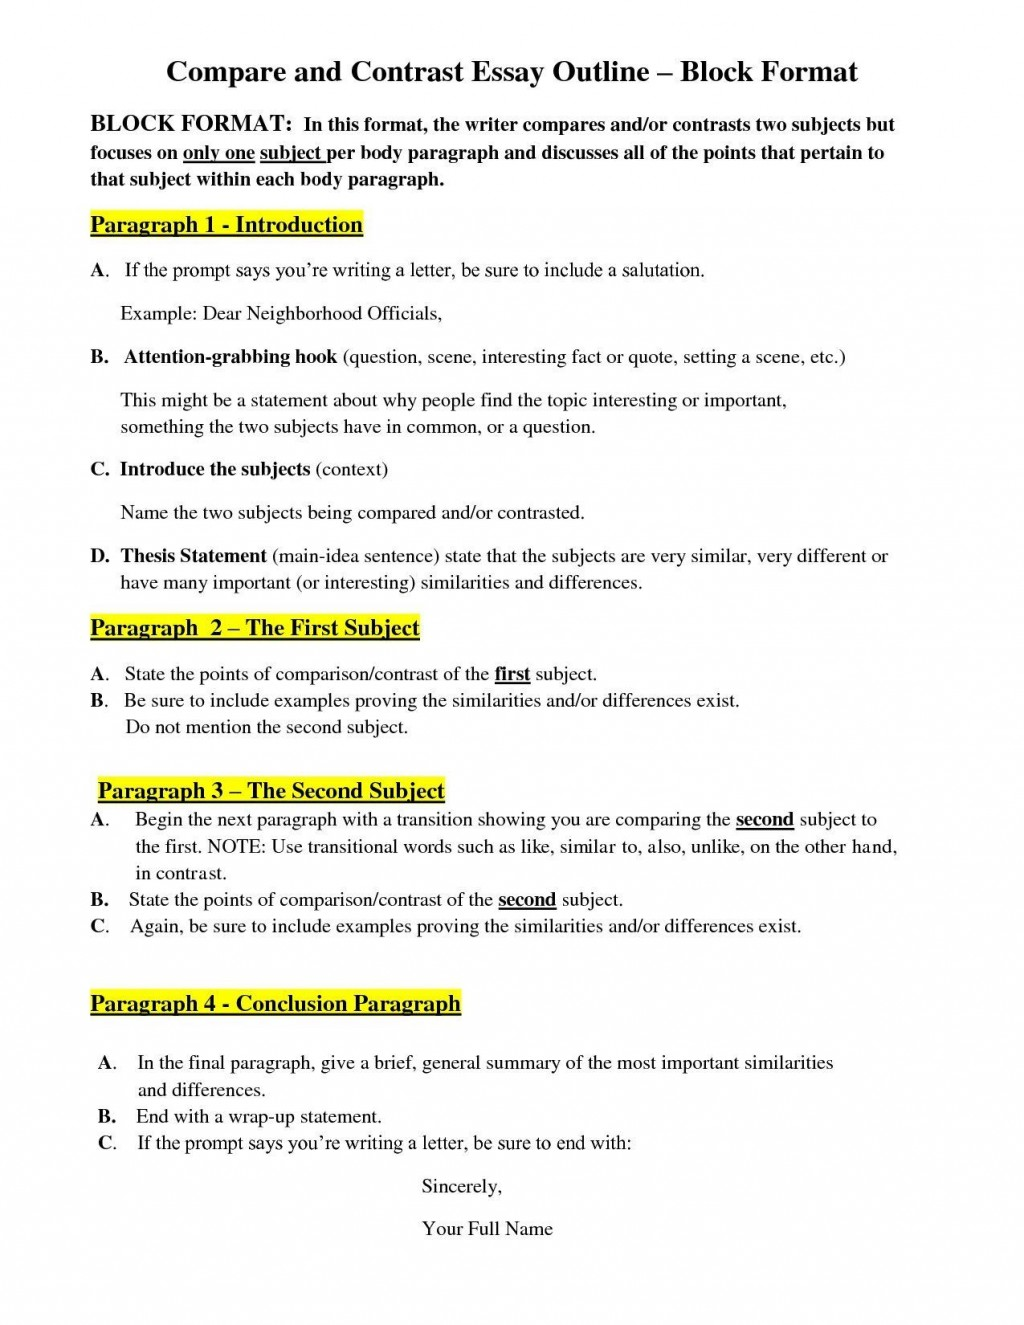 003 Comparison Essay Outline Unusual Compare Contrast Format College Template Large